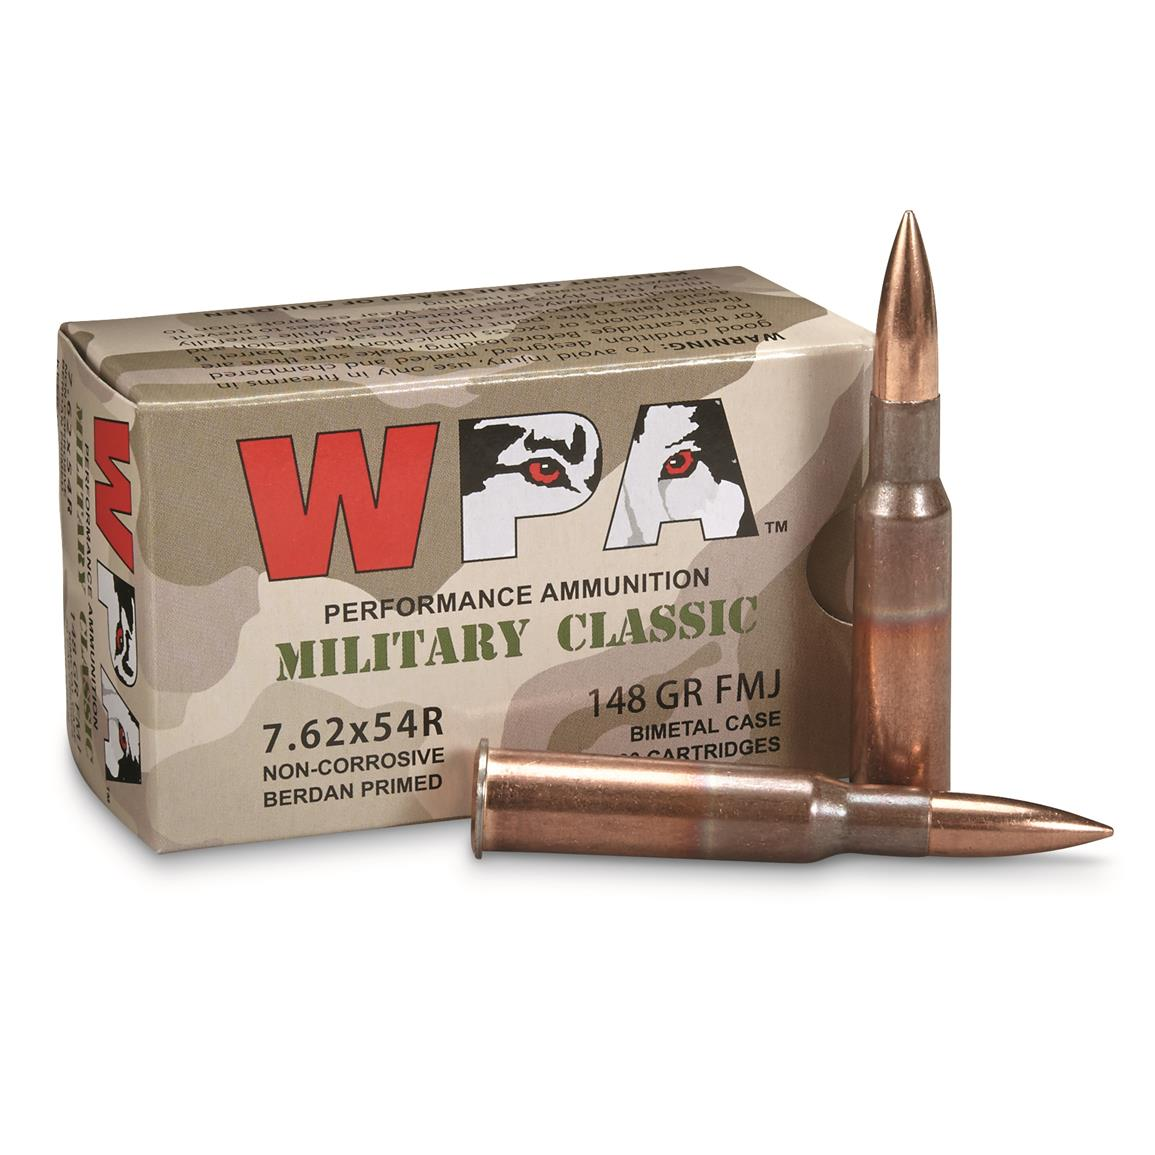 Wolf WPA Military Classic, 7.62x54R, FMJ, 148 Grain, 240 Rounds